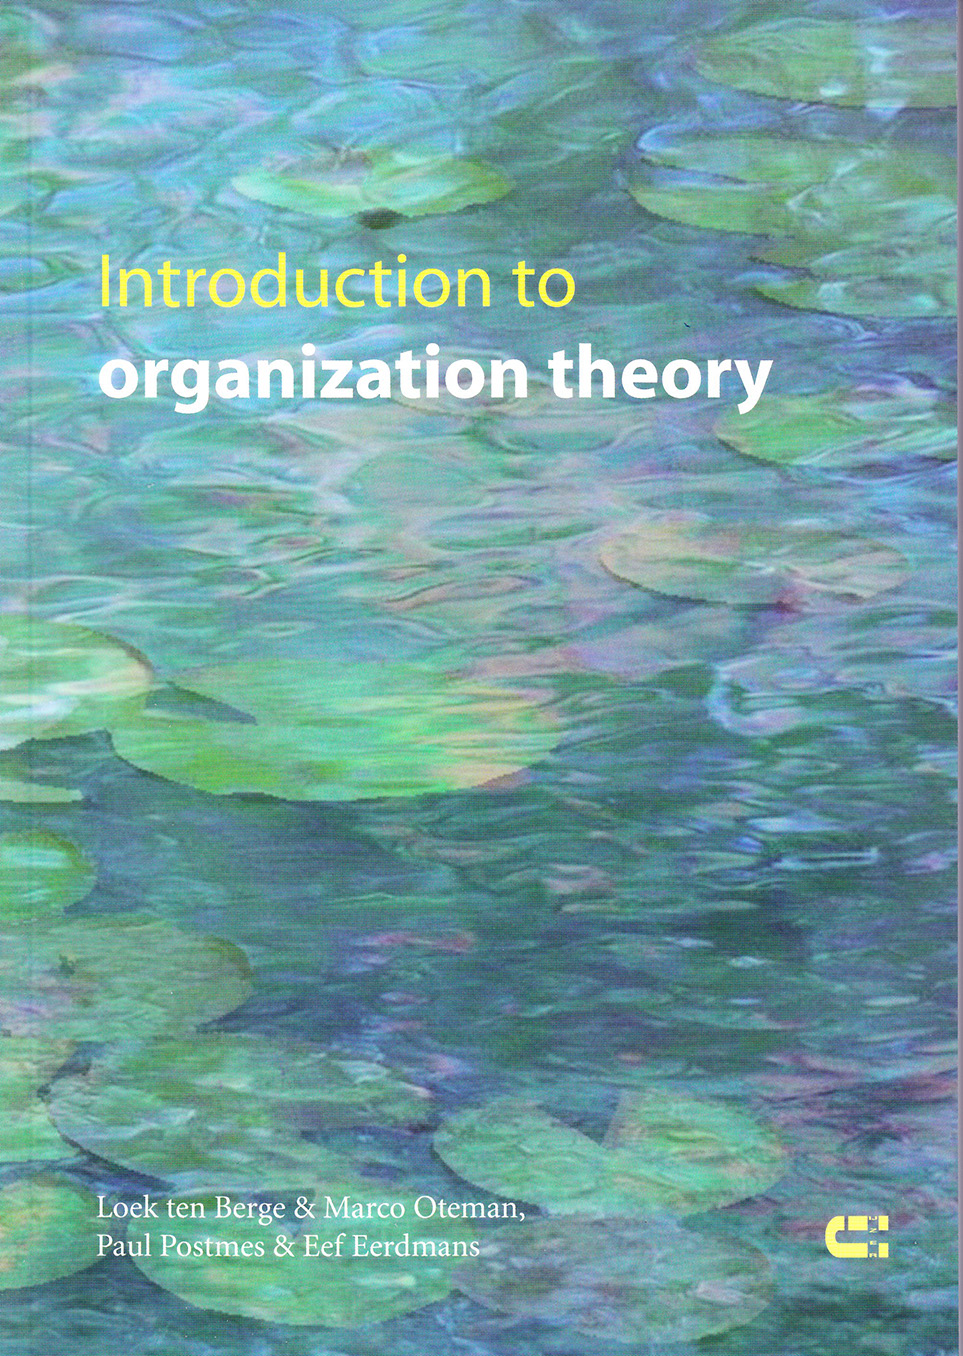 Loek ten Berge Introduction to organization theory